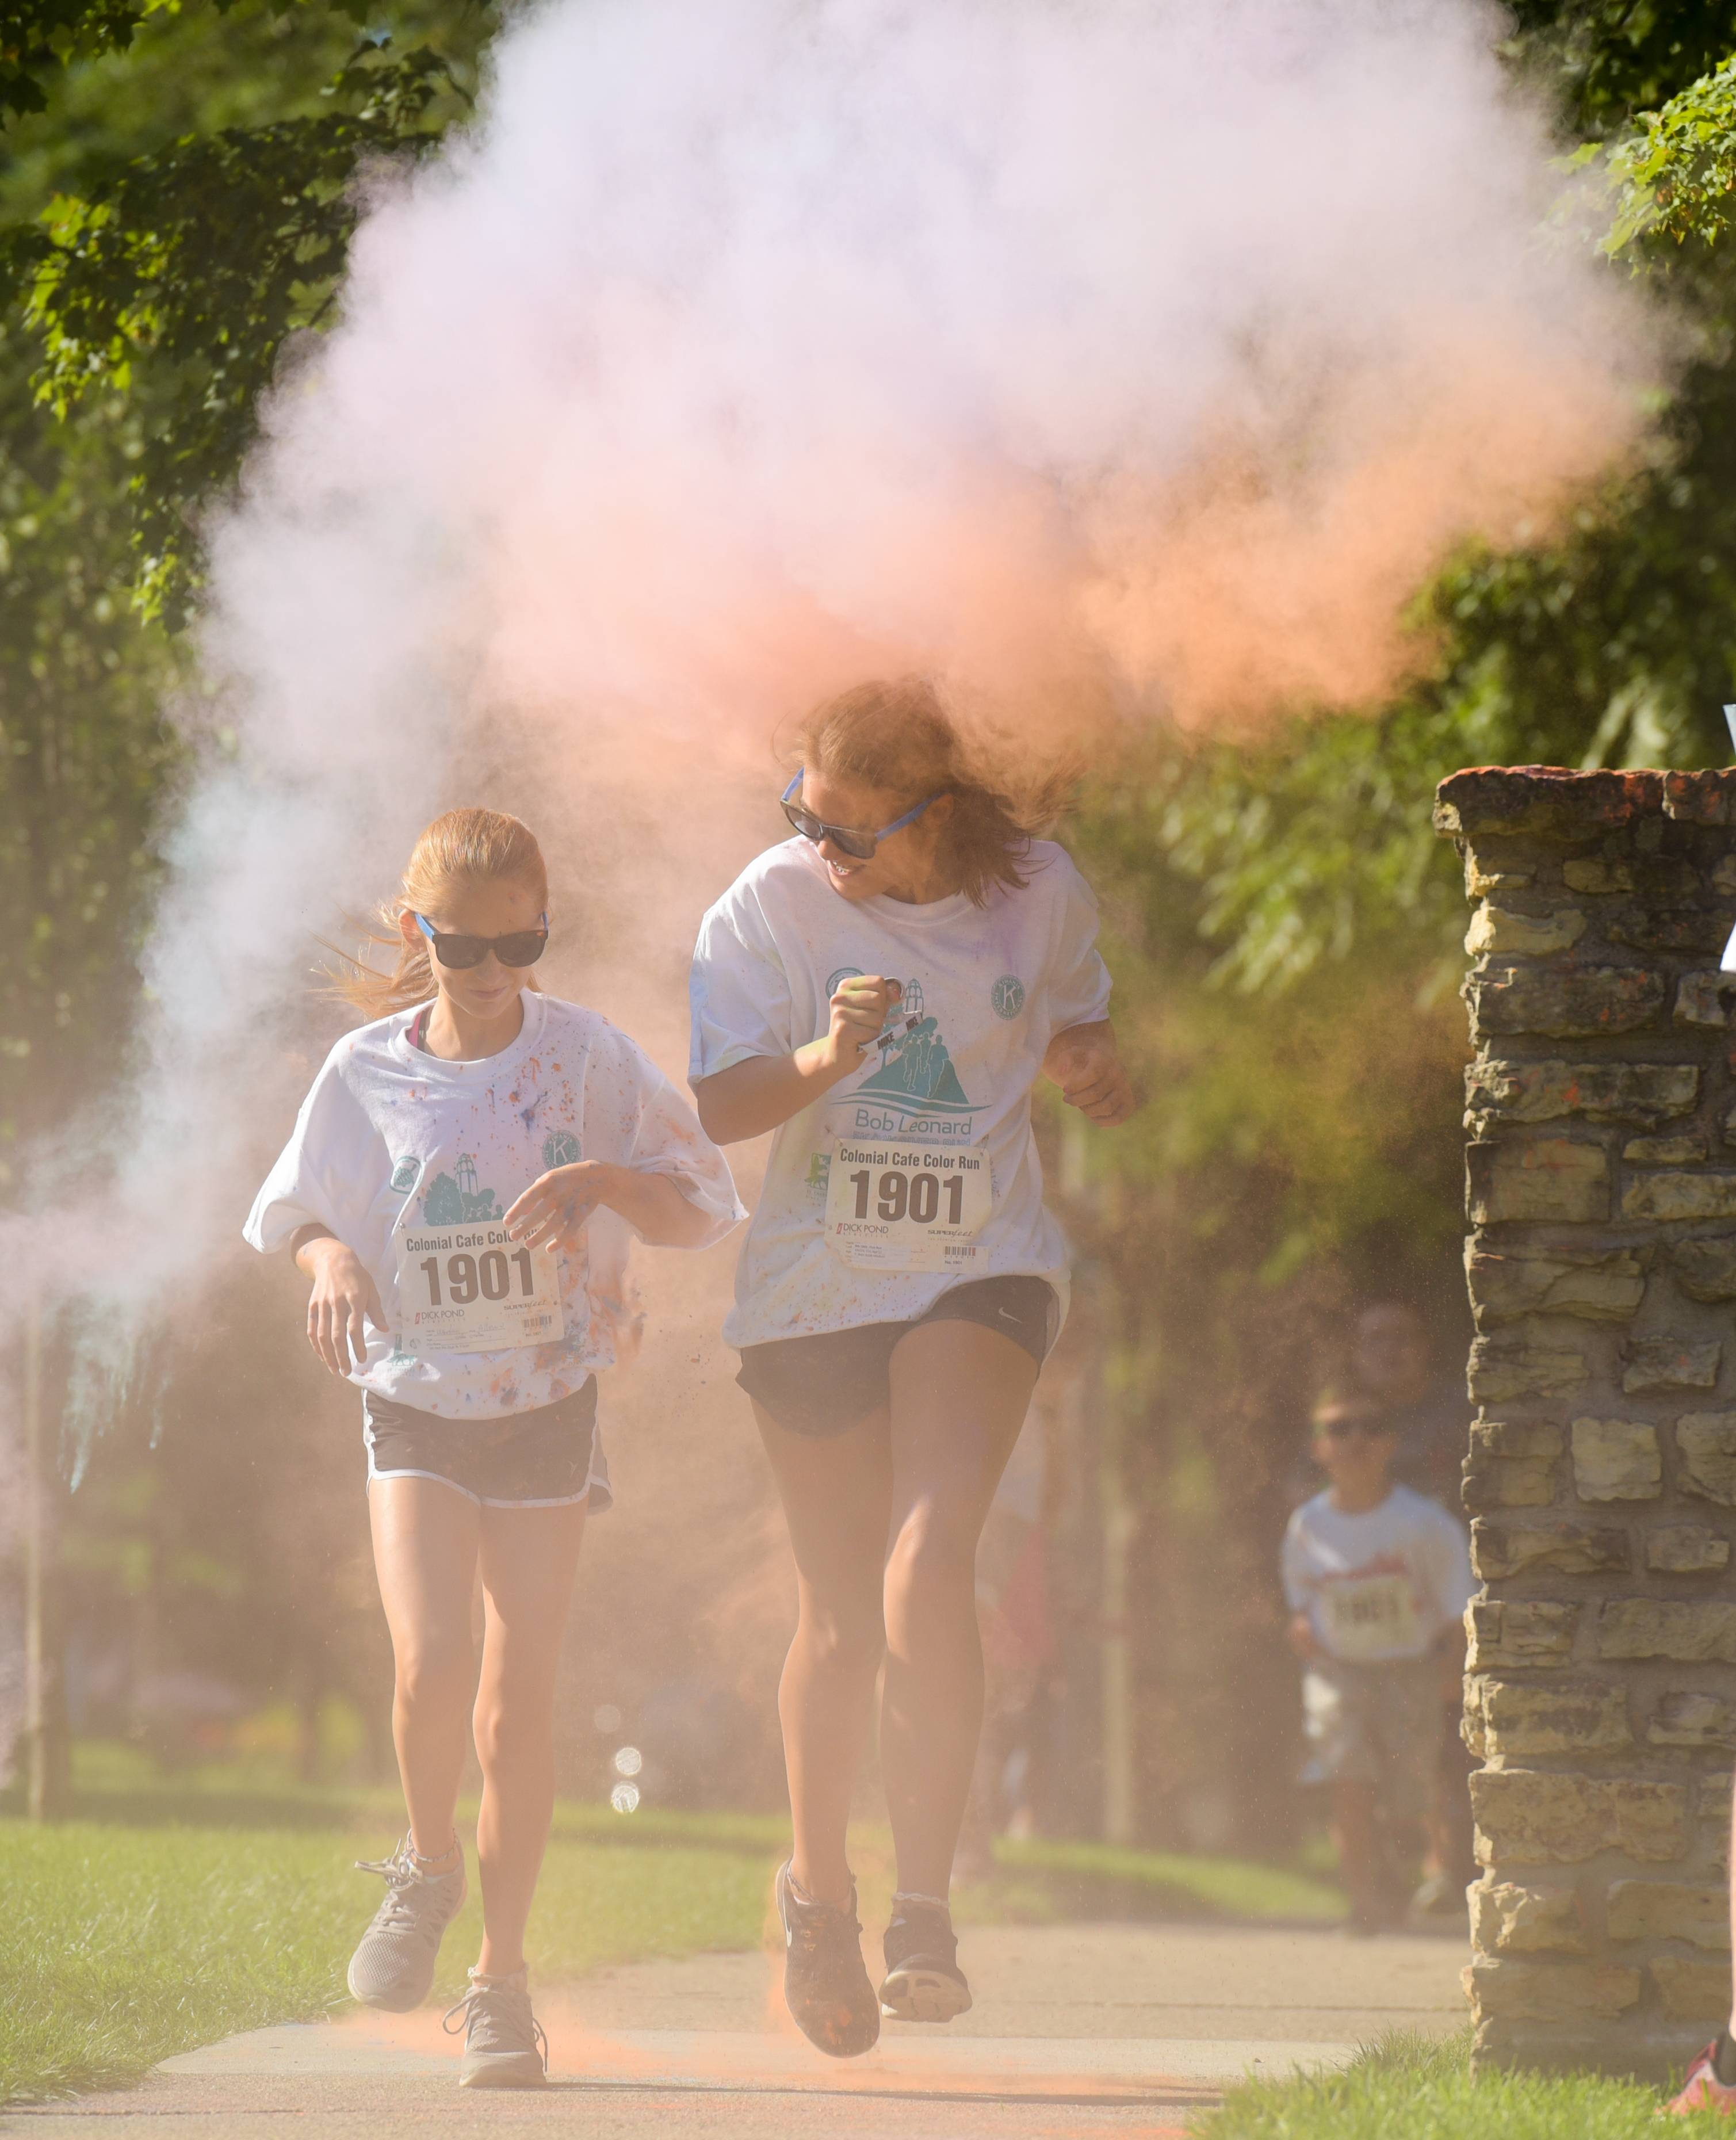 Runners in the Colonial Cafe Family 1K Color Run get doused with colored powder.